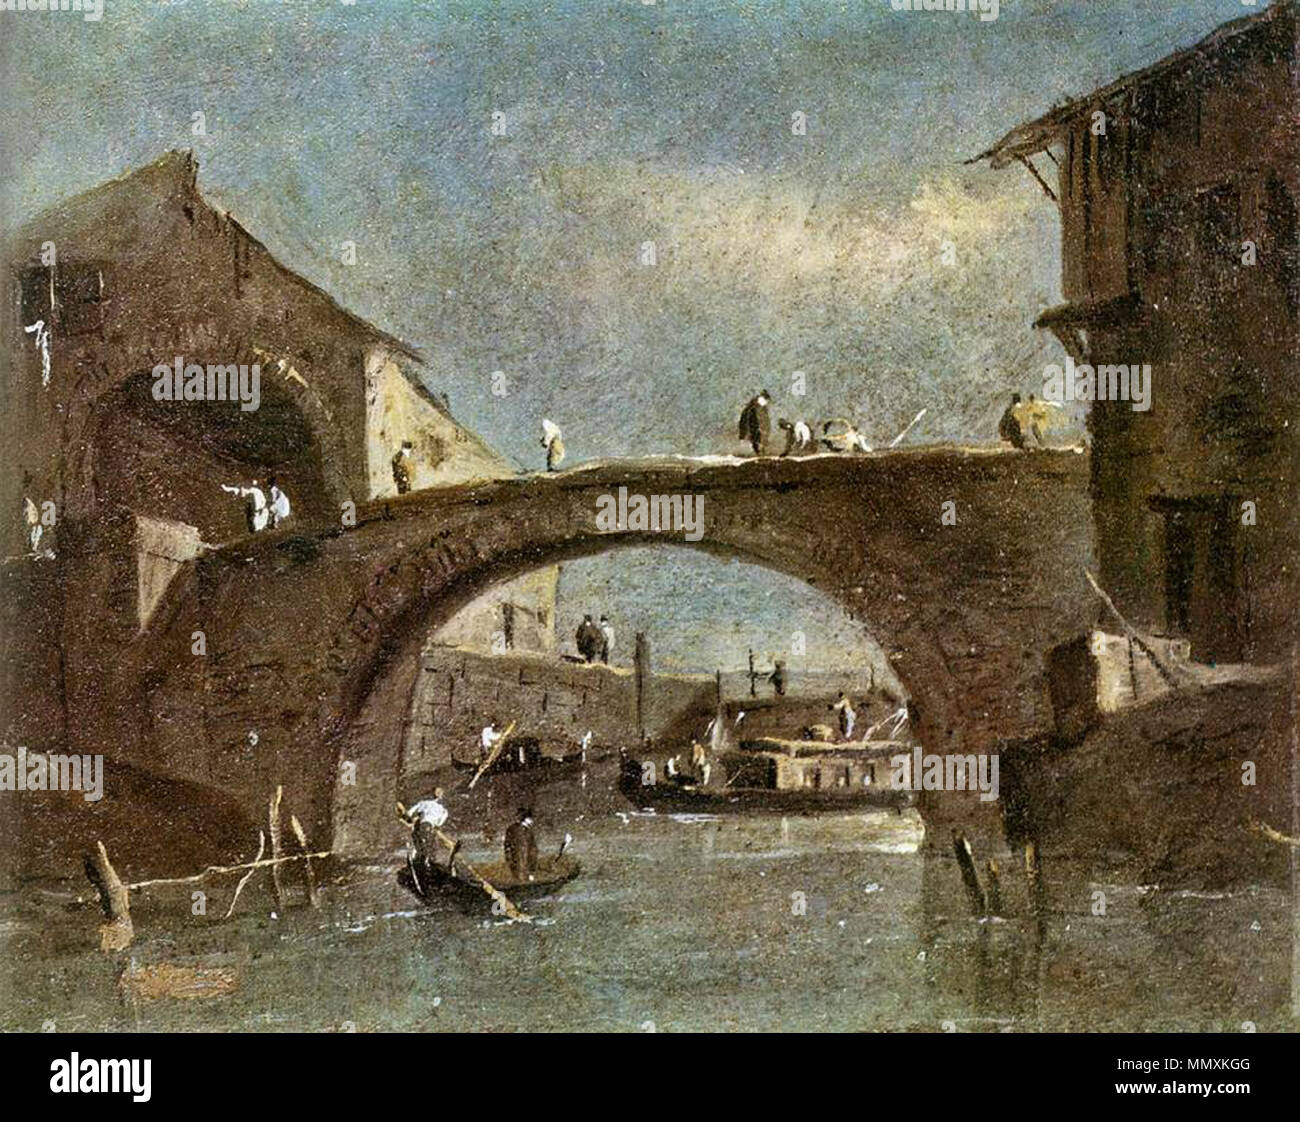 Bridge at Dolo. second half of 18th century. Francesco Guardi - Bridge at Dolo - WGA10838 Stock Photo